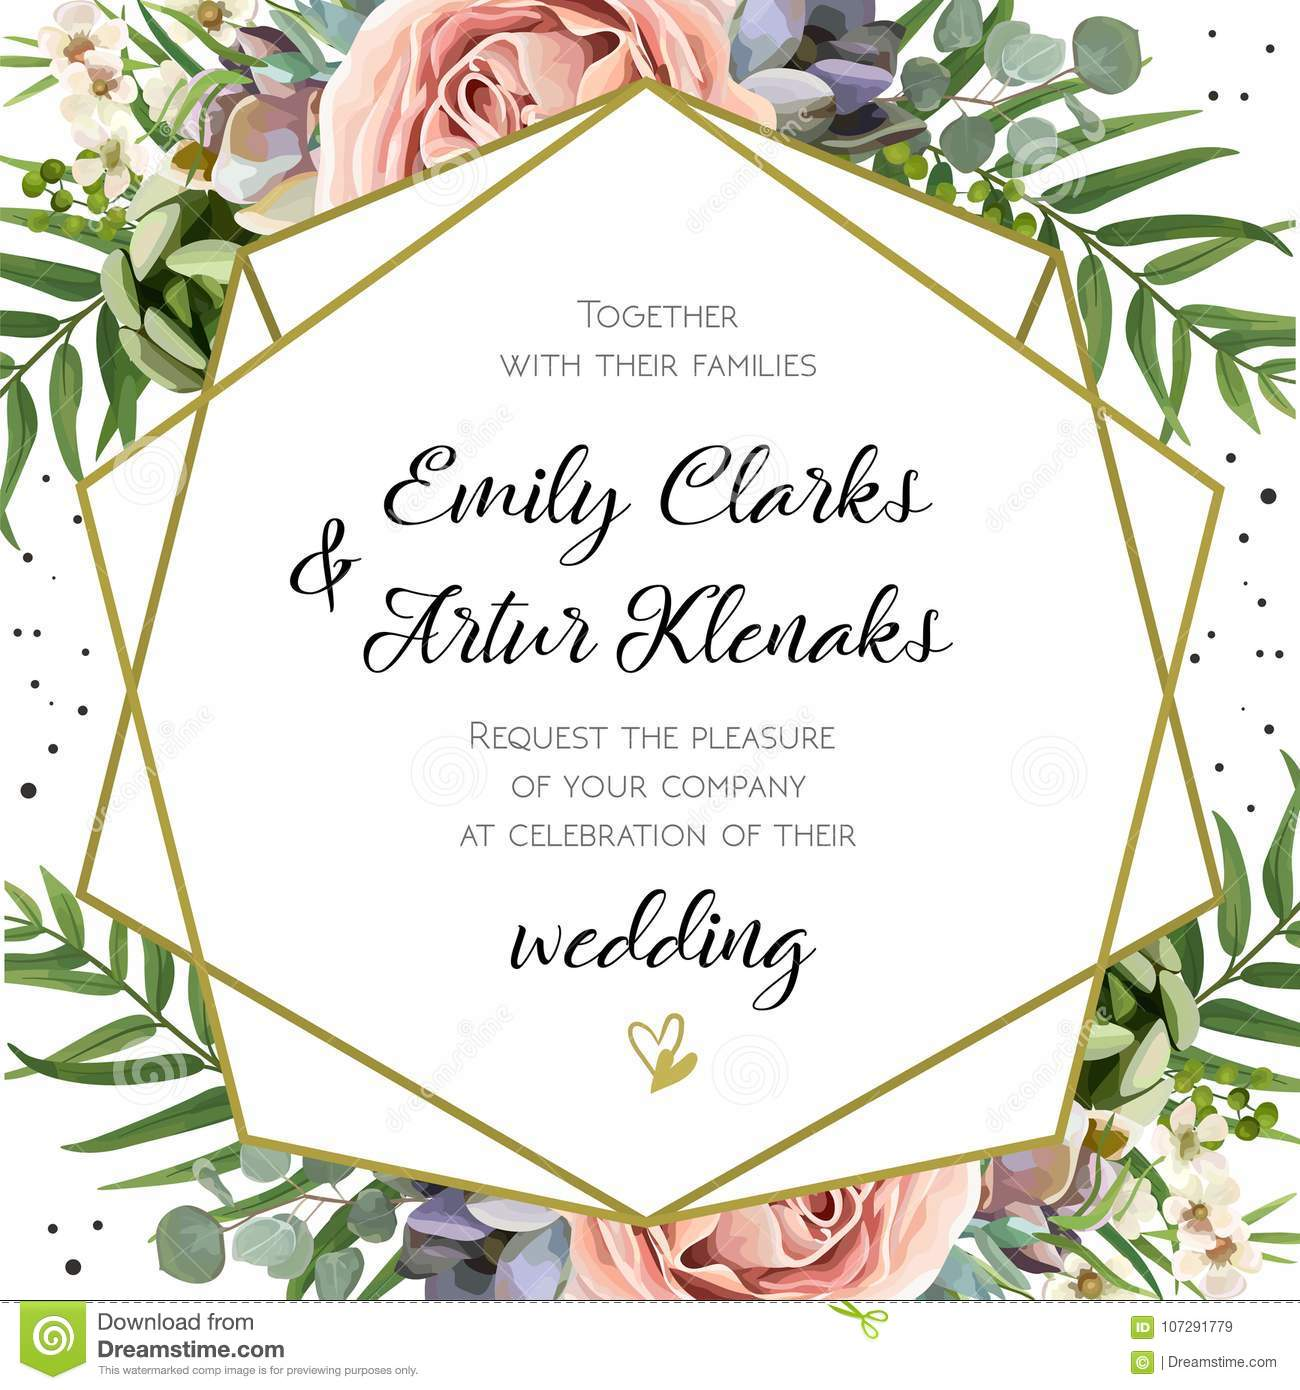 Wedding Invitation, floral invite card Design: Peach lavender pi